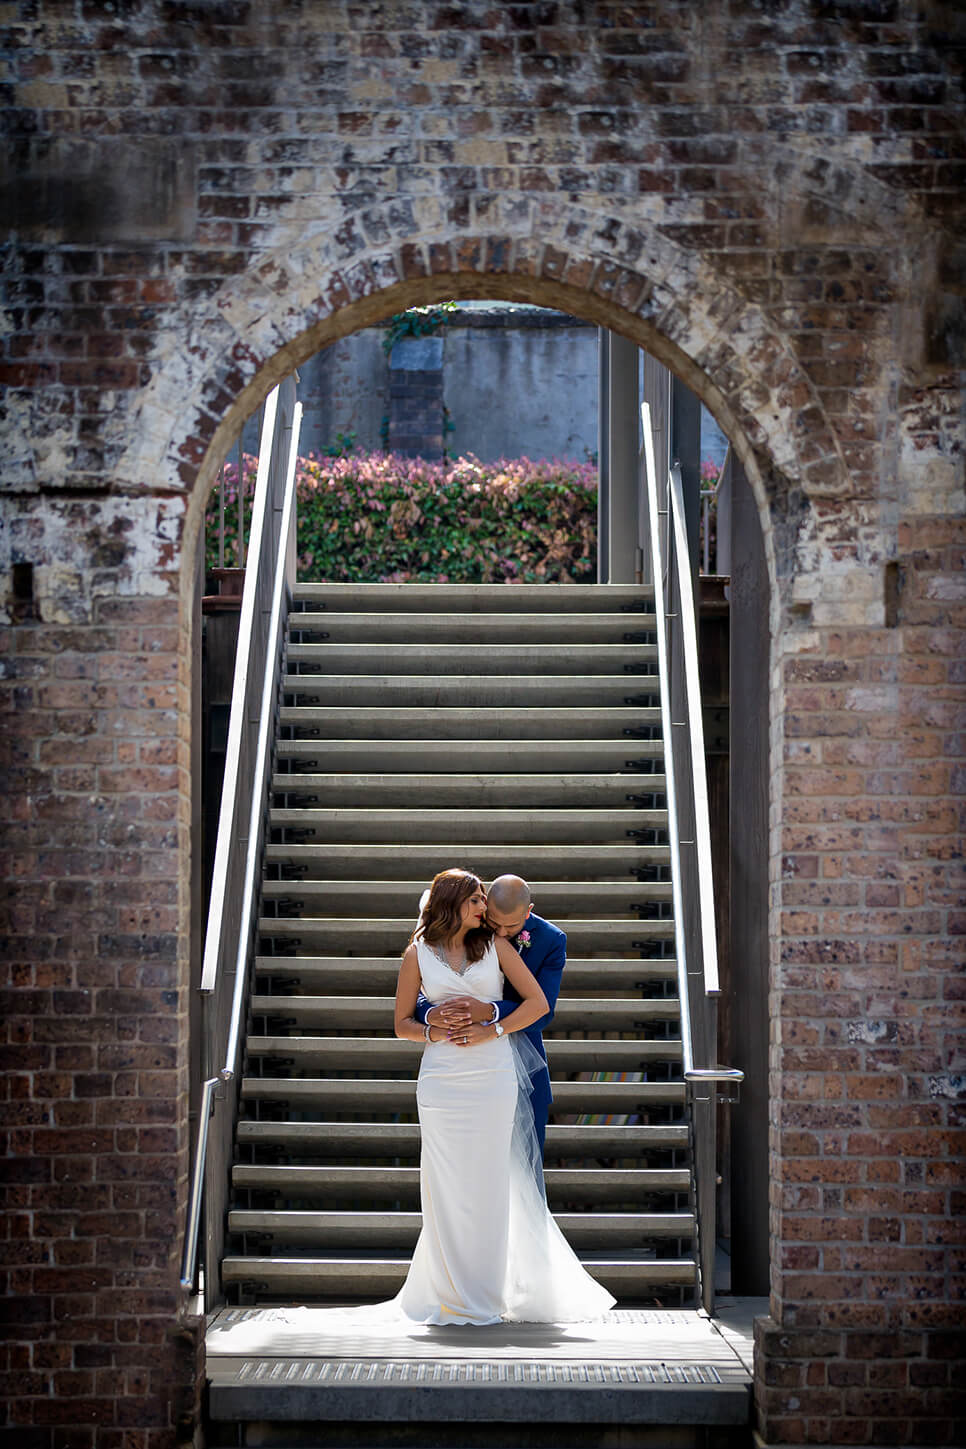 groom with hands around bride's waist at bottom of staircase